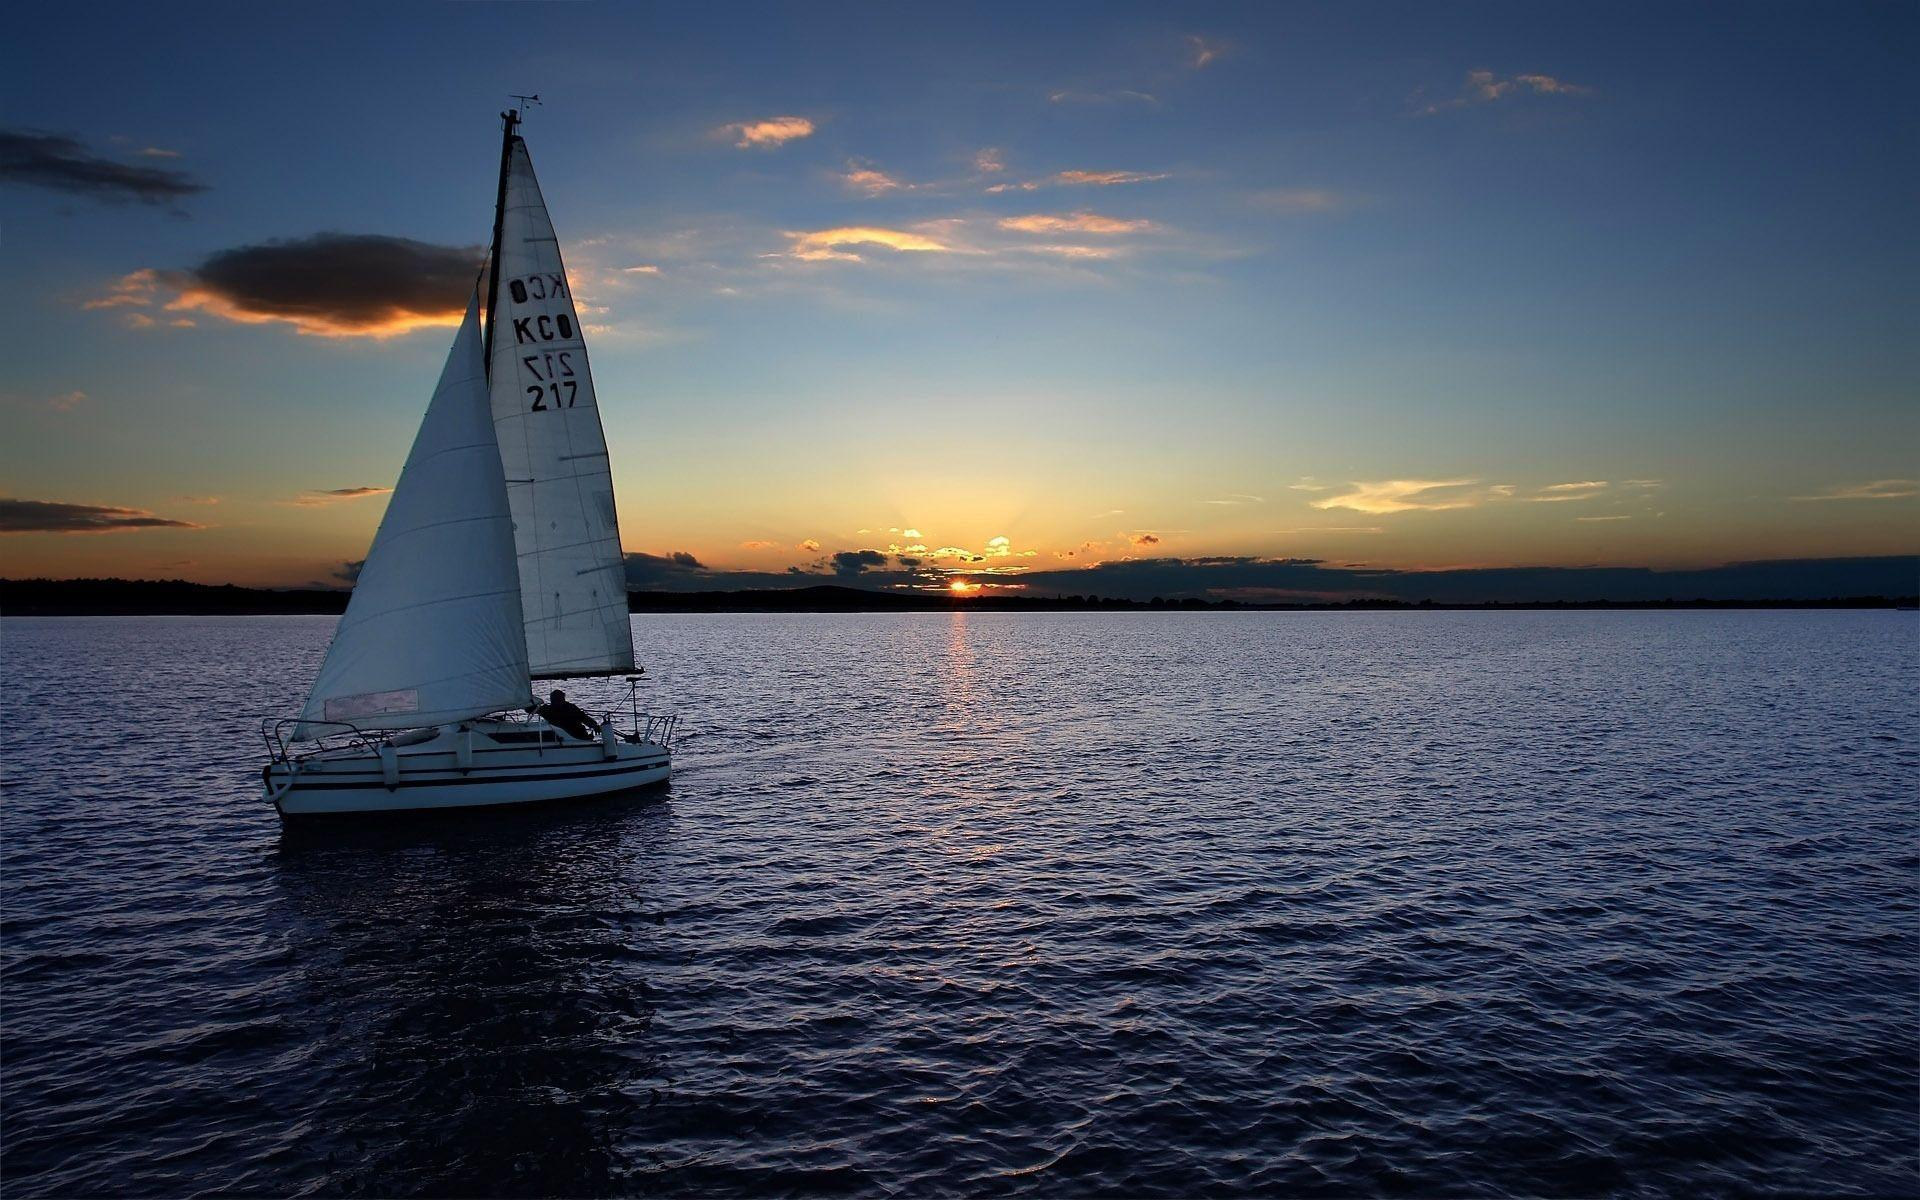 desktop wallpapers boats and - photo #34